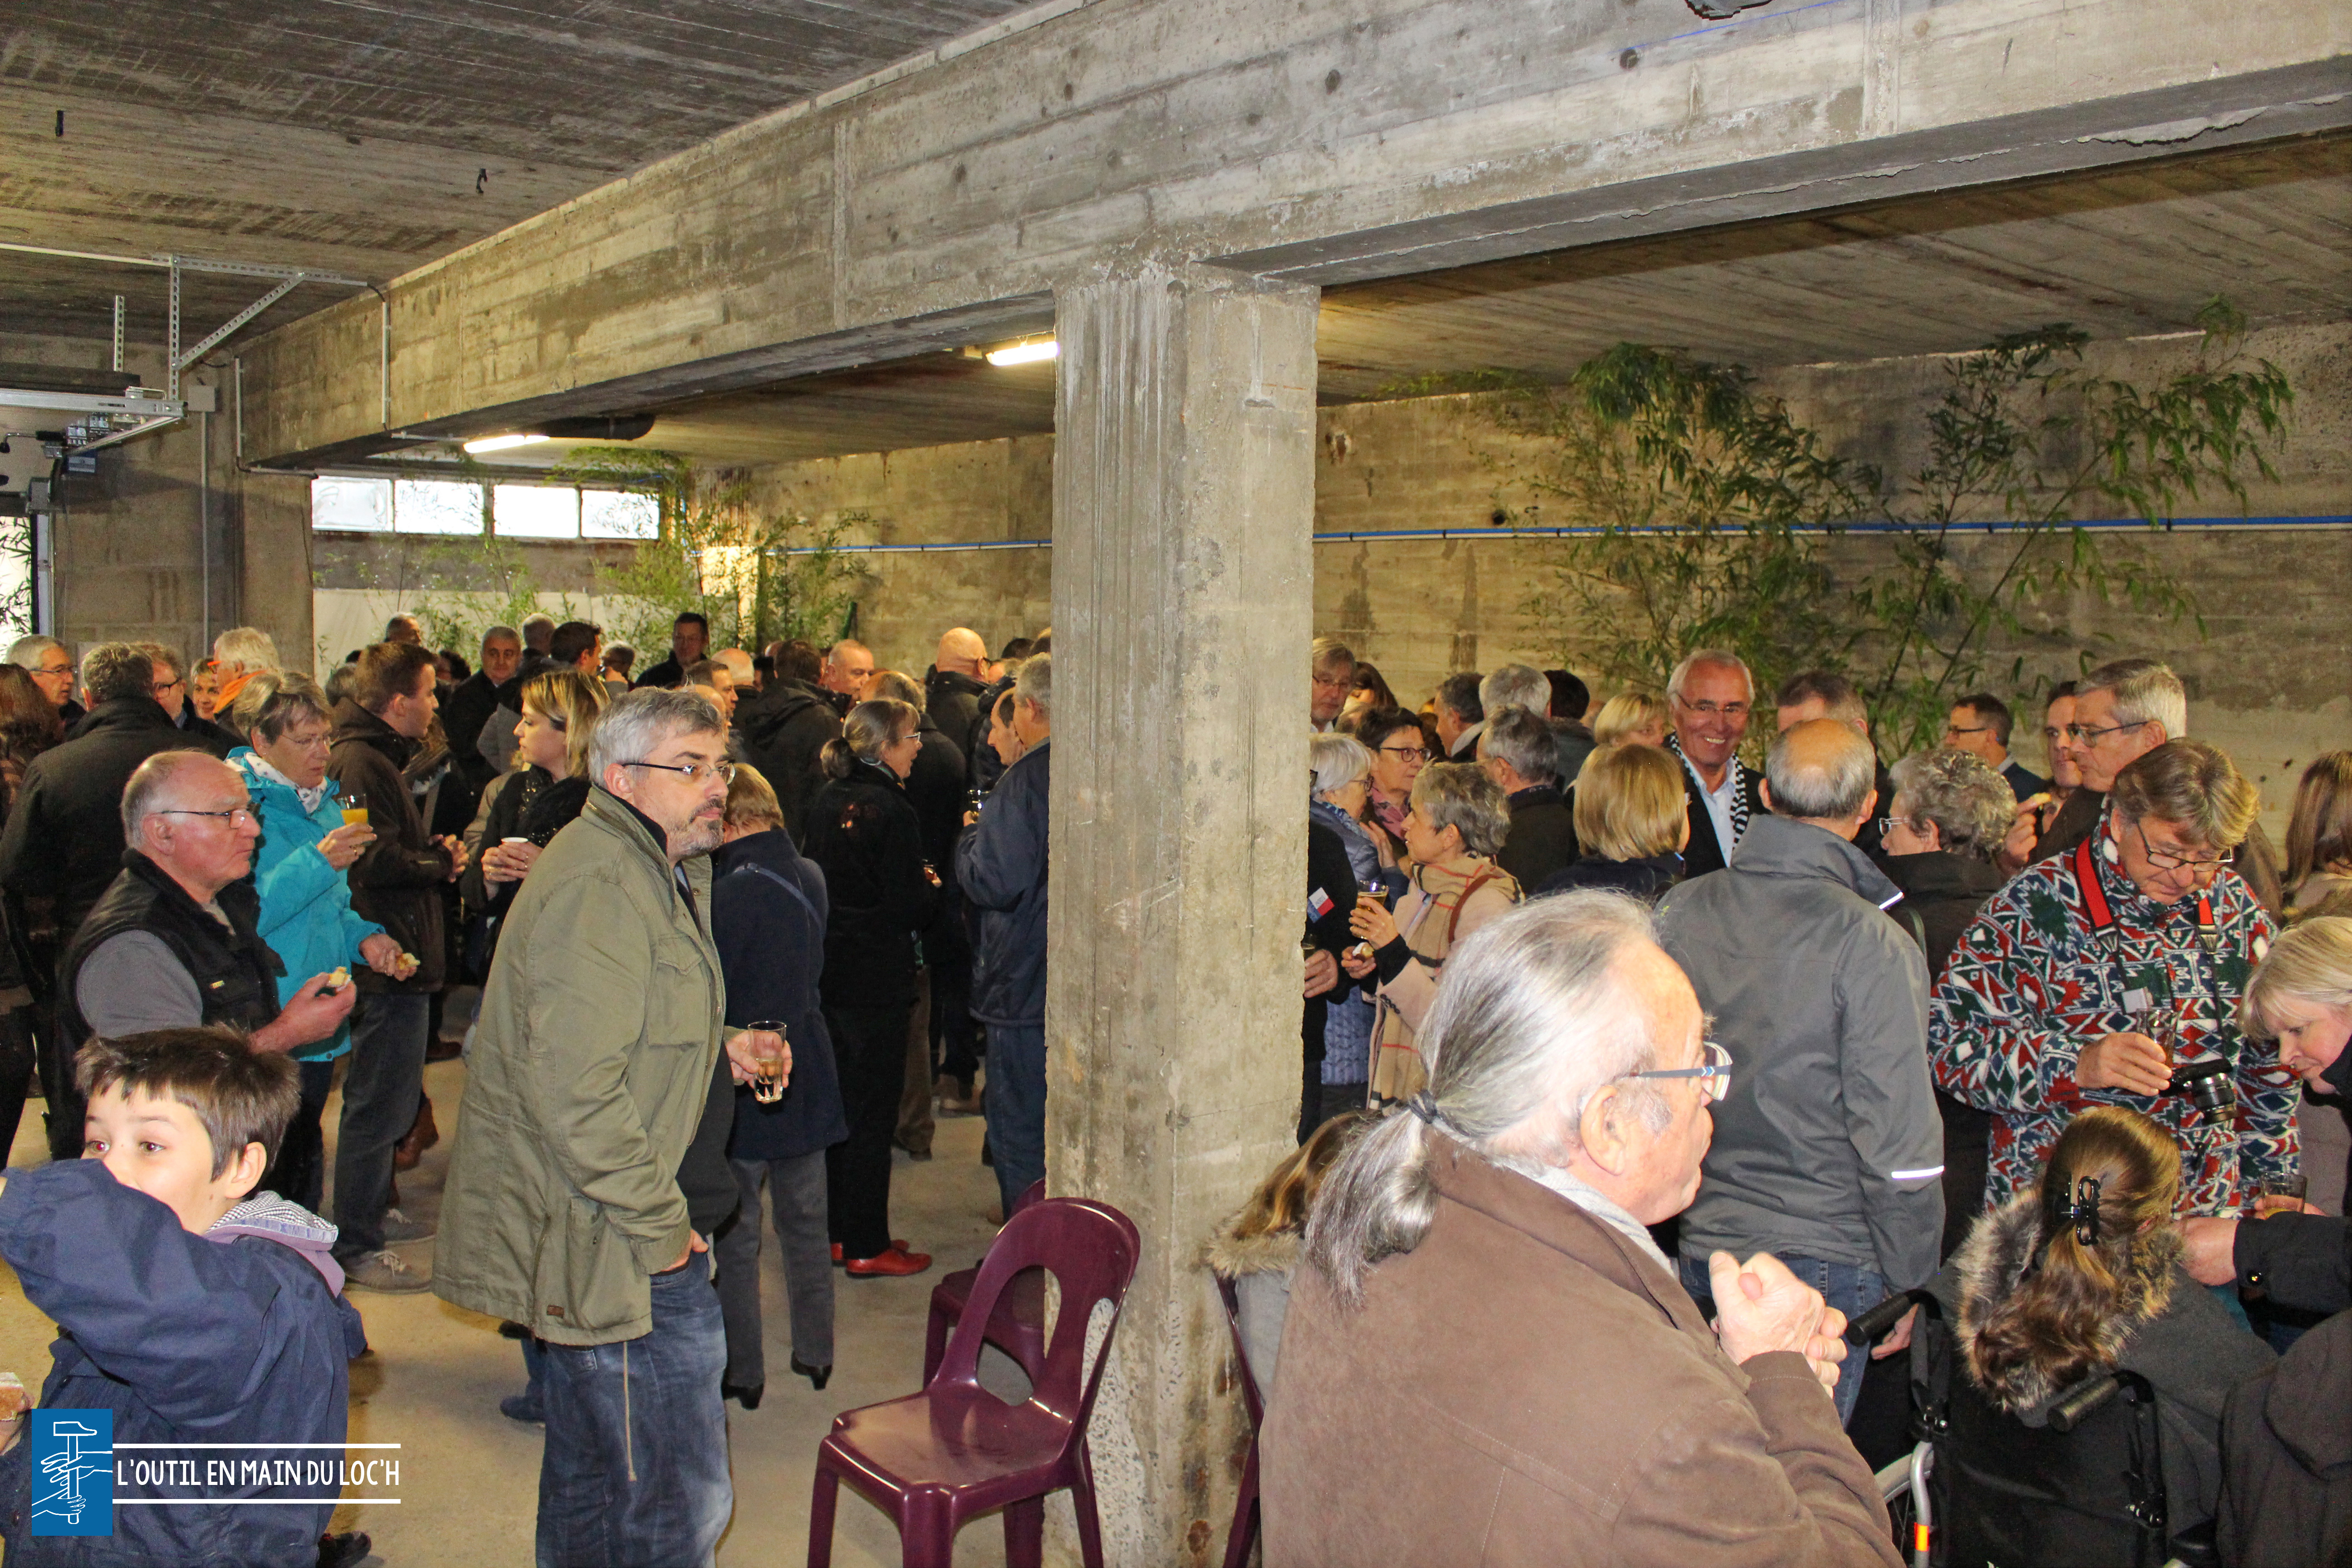 loutilenmainduloch-invites-foule-inauguration-outil-en-main-loch-grand-champ